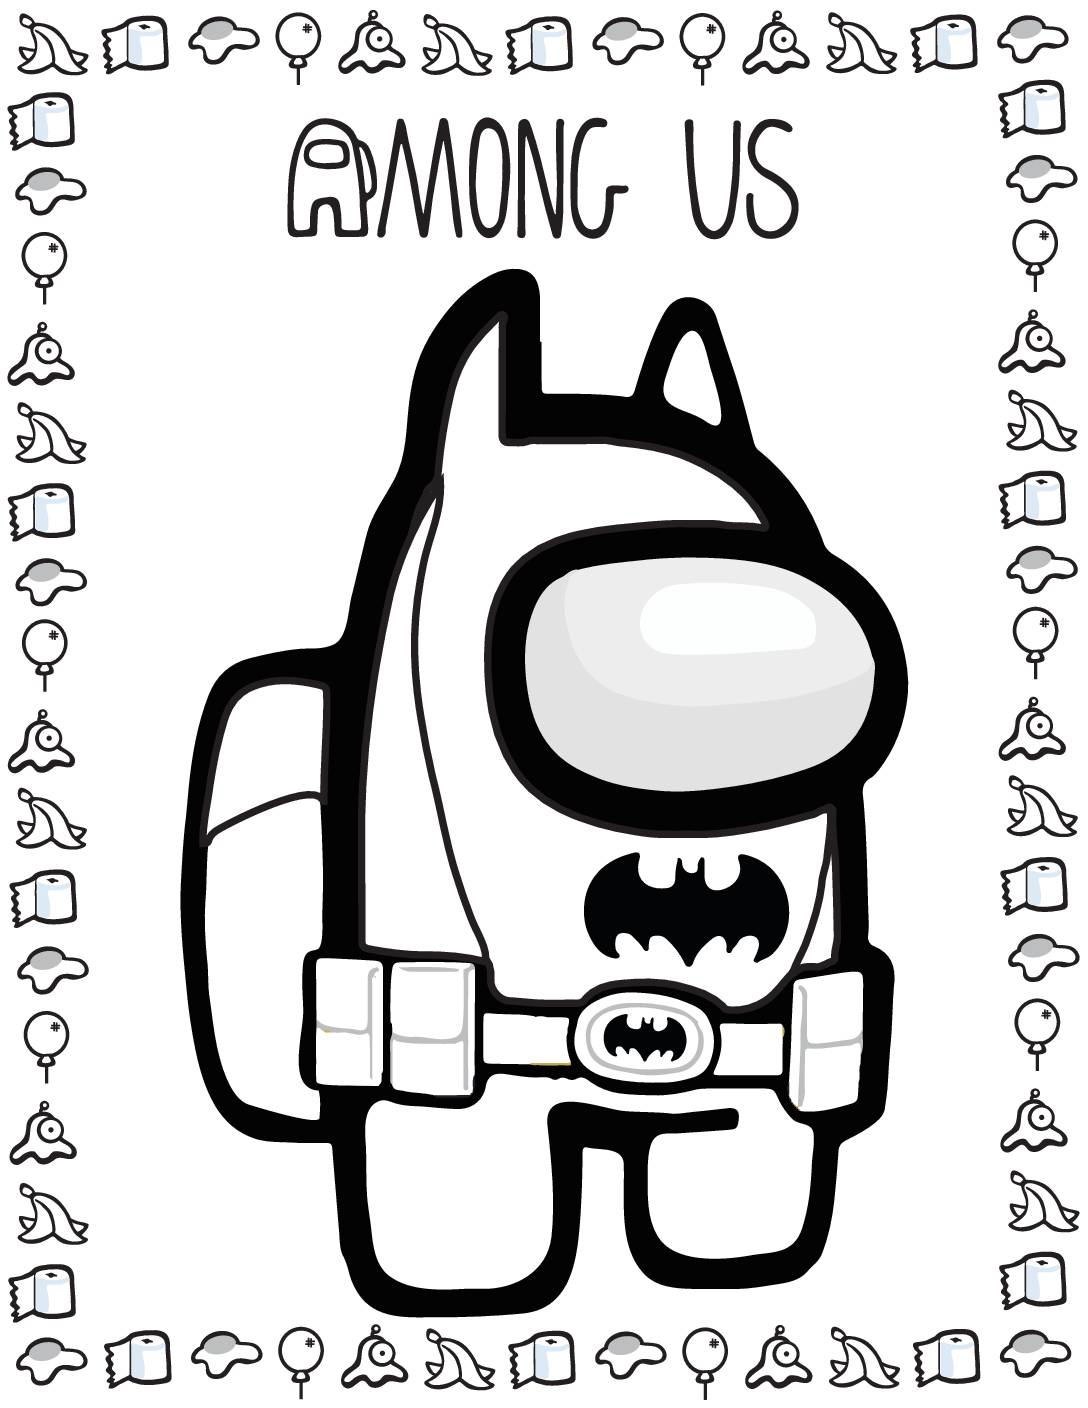 Coloring Page 6 Among US